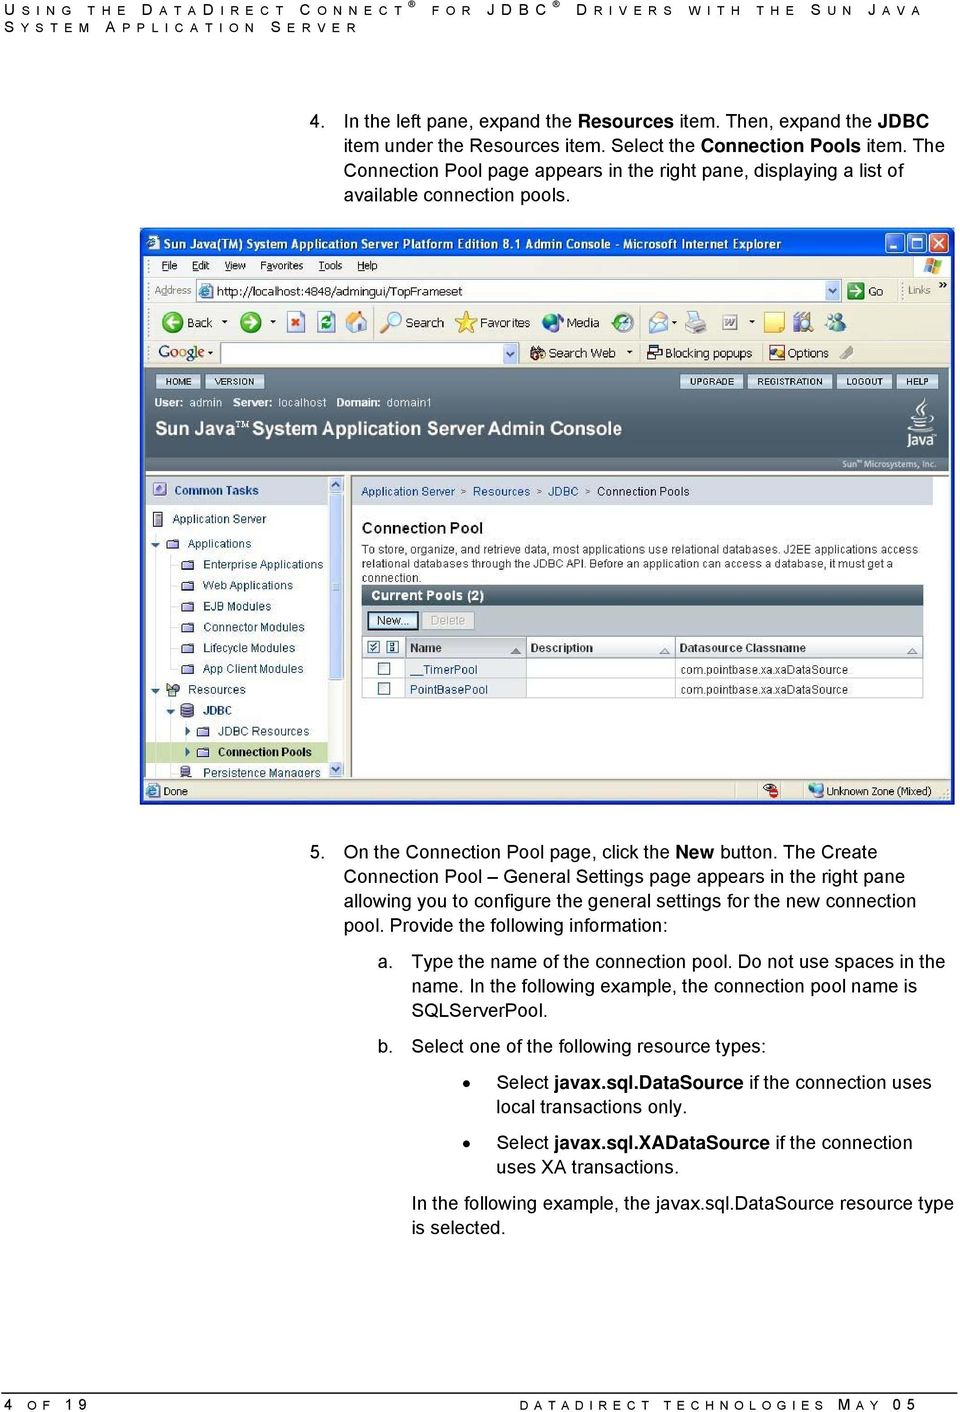 The Create Connection Pool General Settings page appears in the right pane allowing you to configure the general settings for the new connection pool. Provide the following information: a.